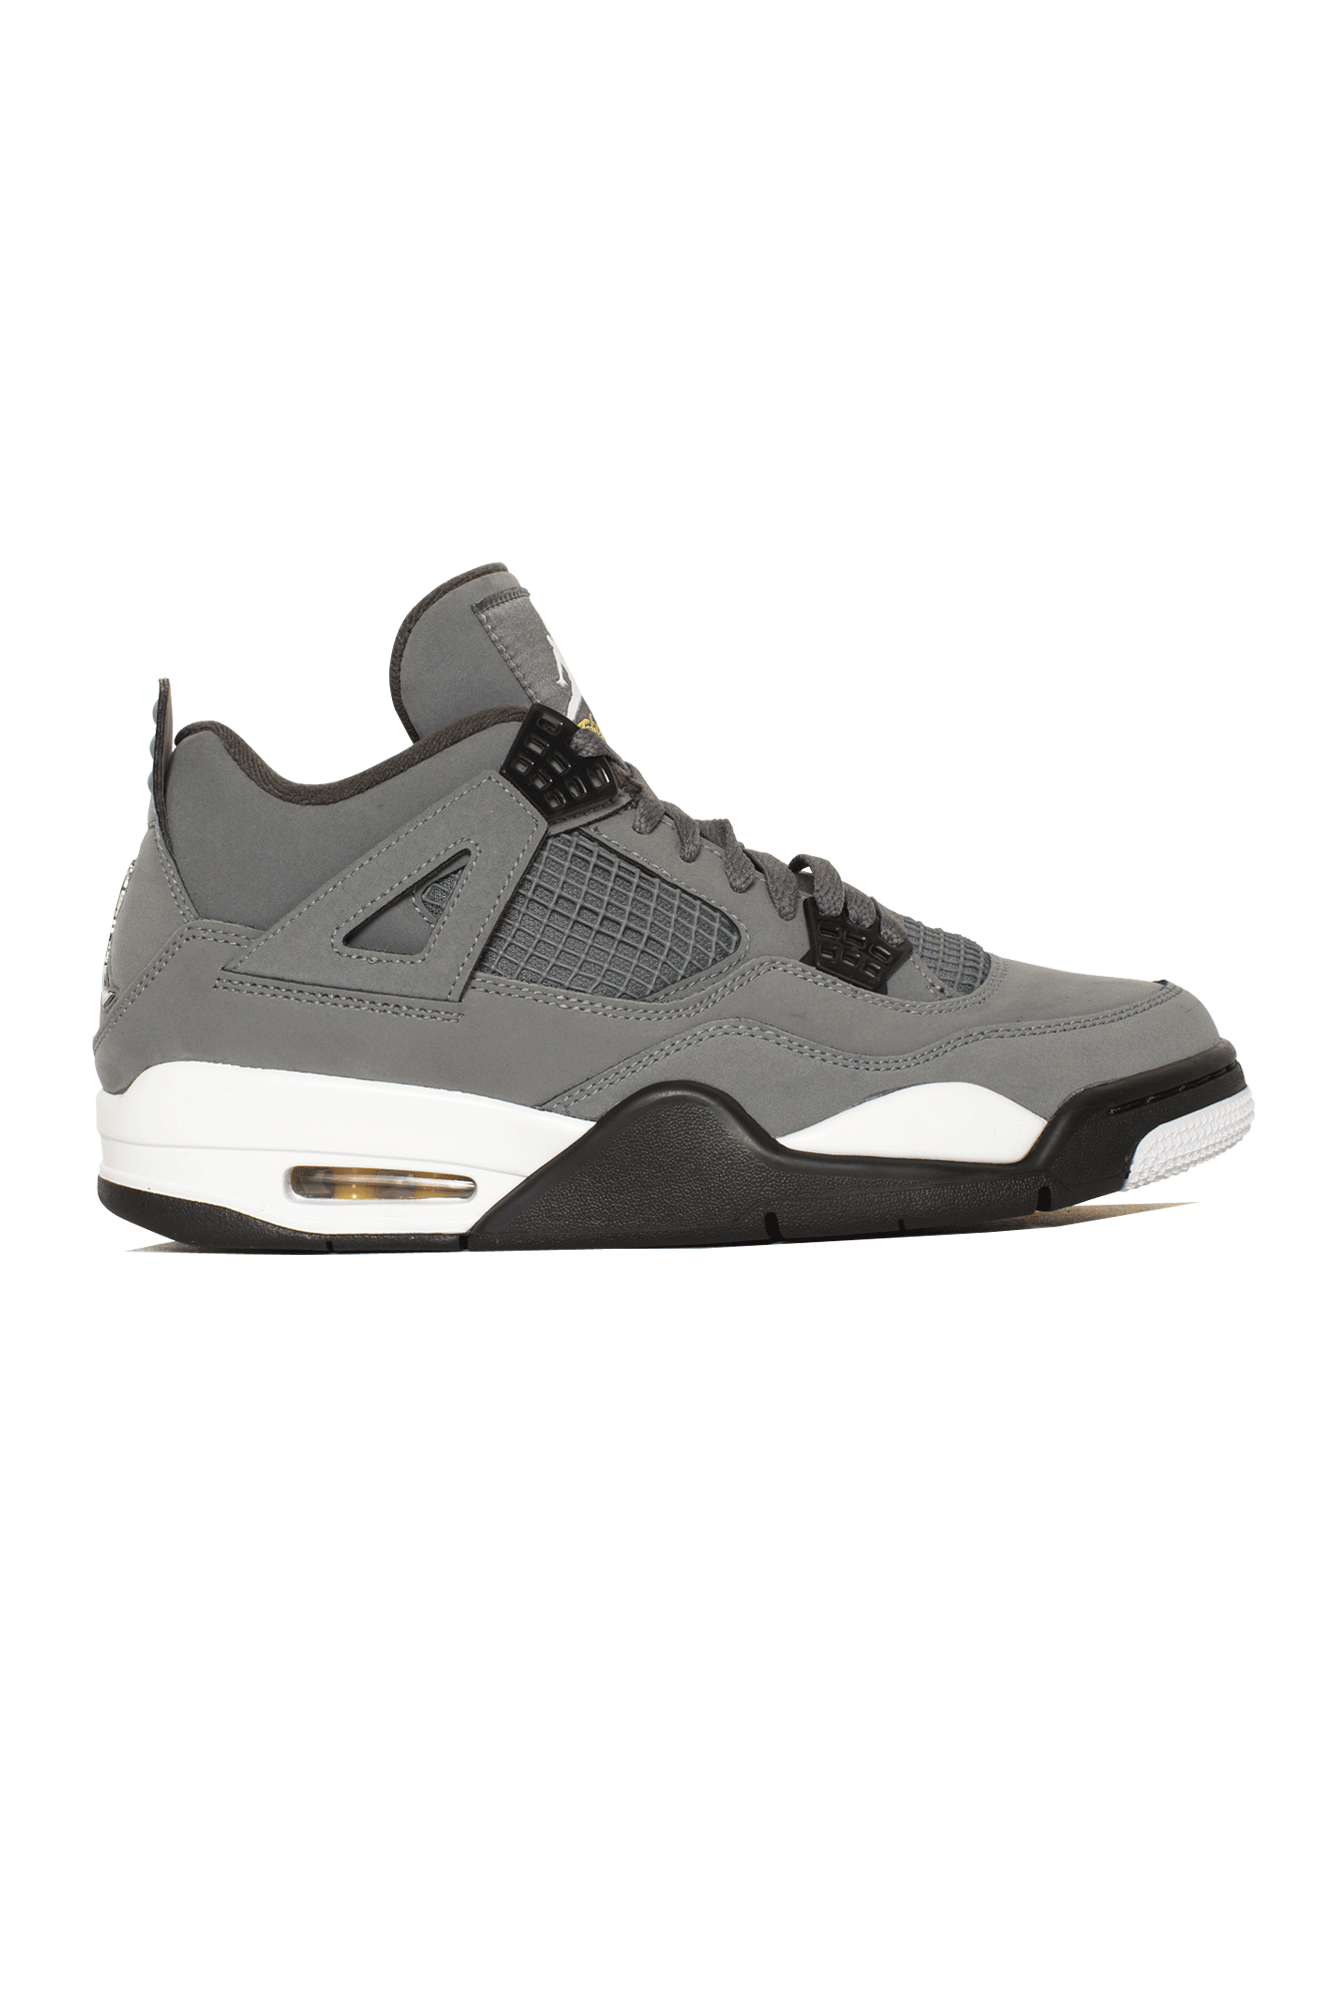 Sneakers Air Jordan 4 RETRO COOL GREY Grey - One Block Down